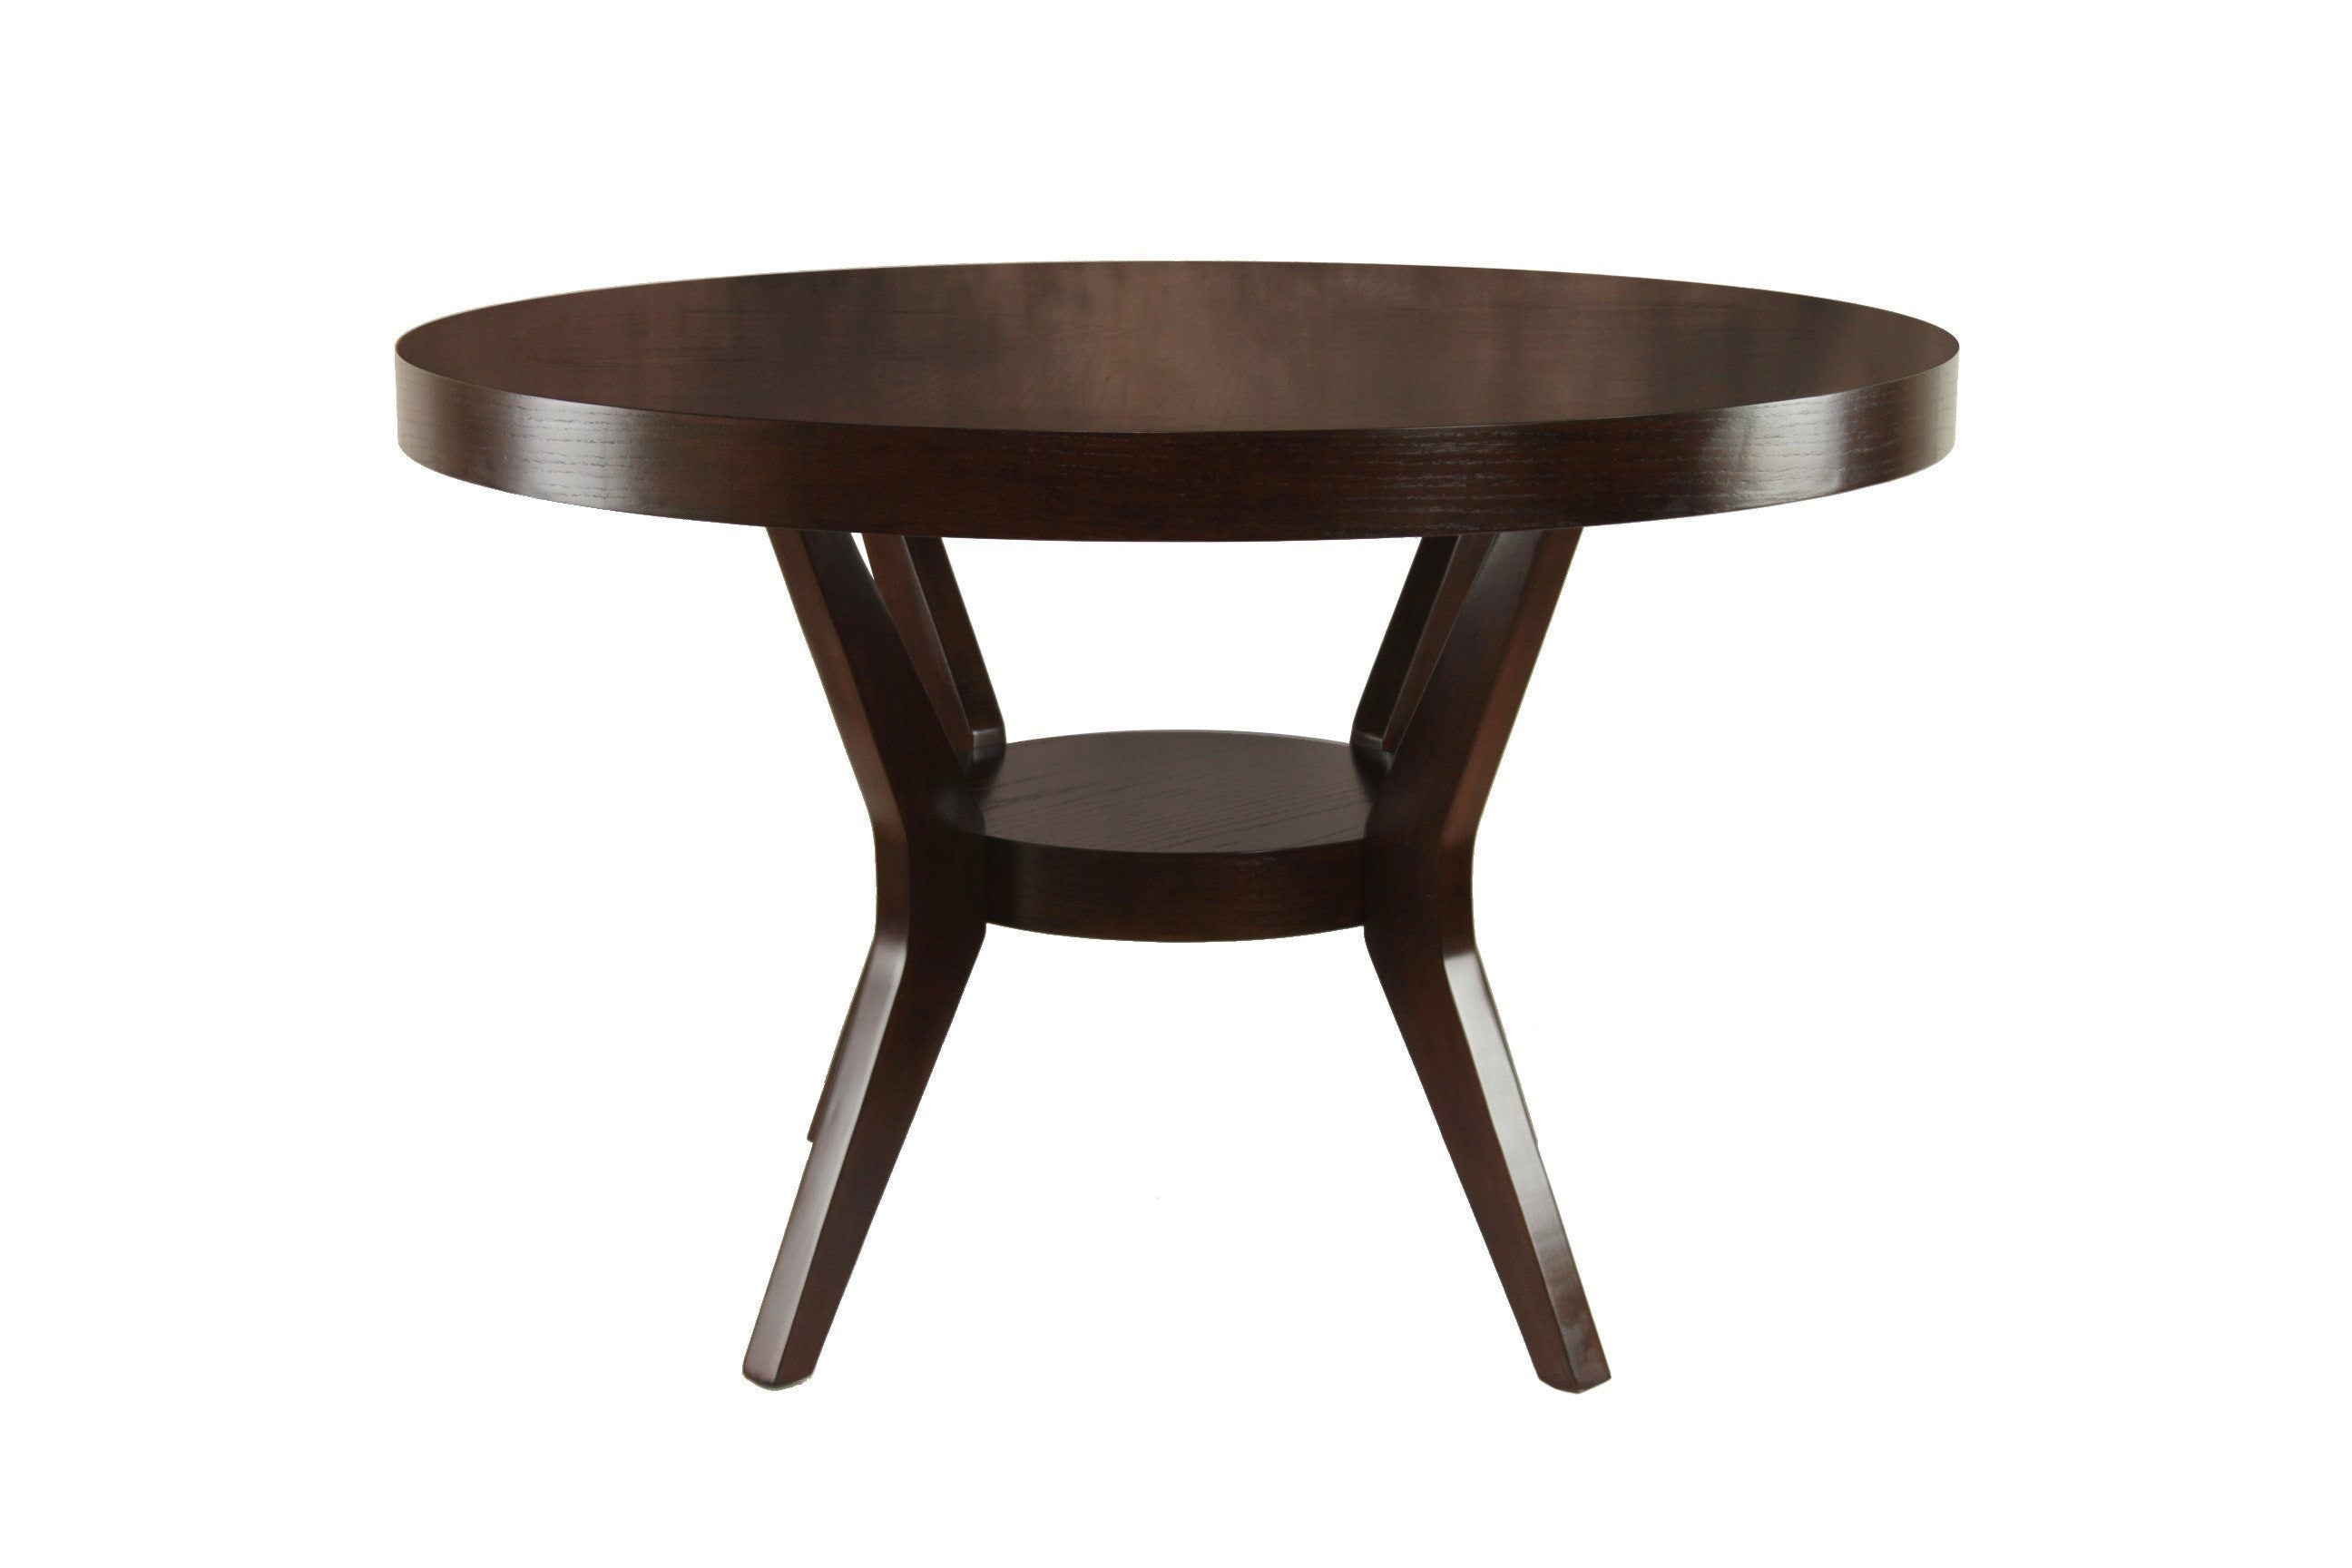 Ollie Modern Round Angled Table Espresso Furniture Enitial Lab